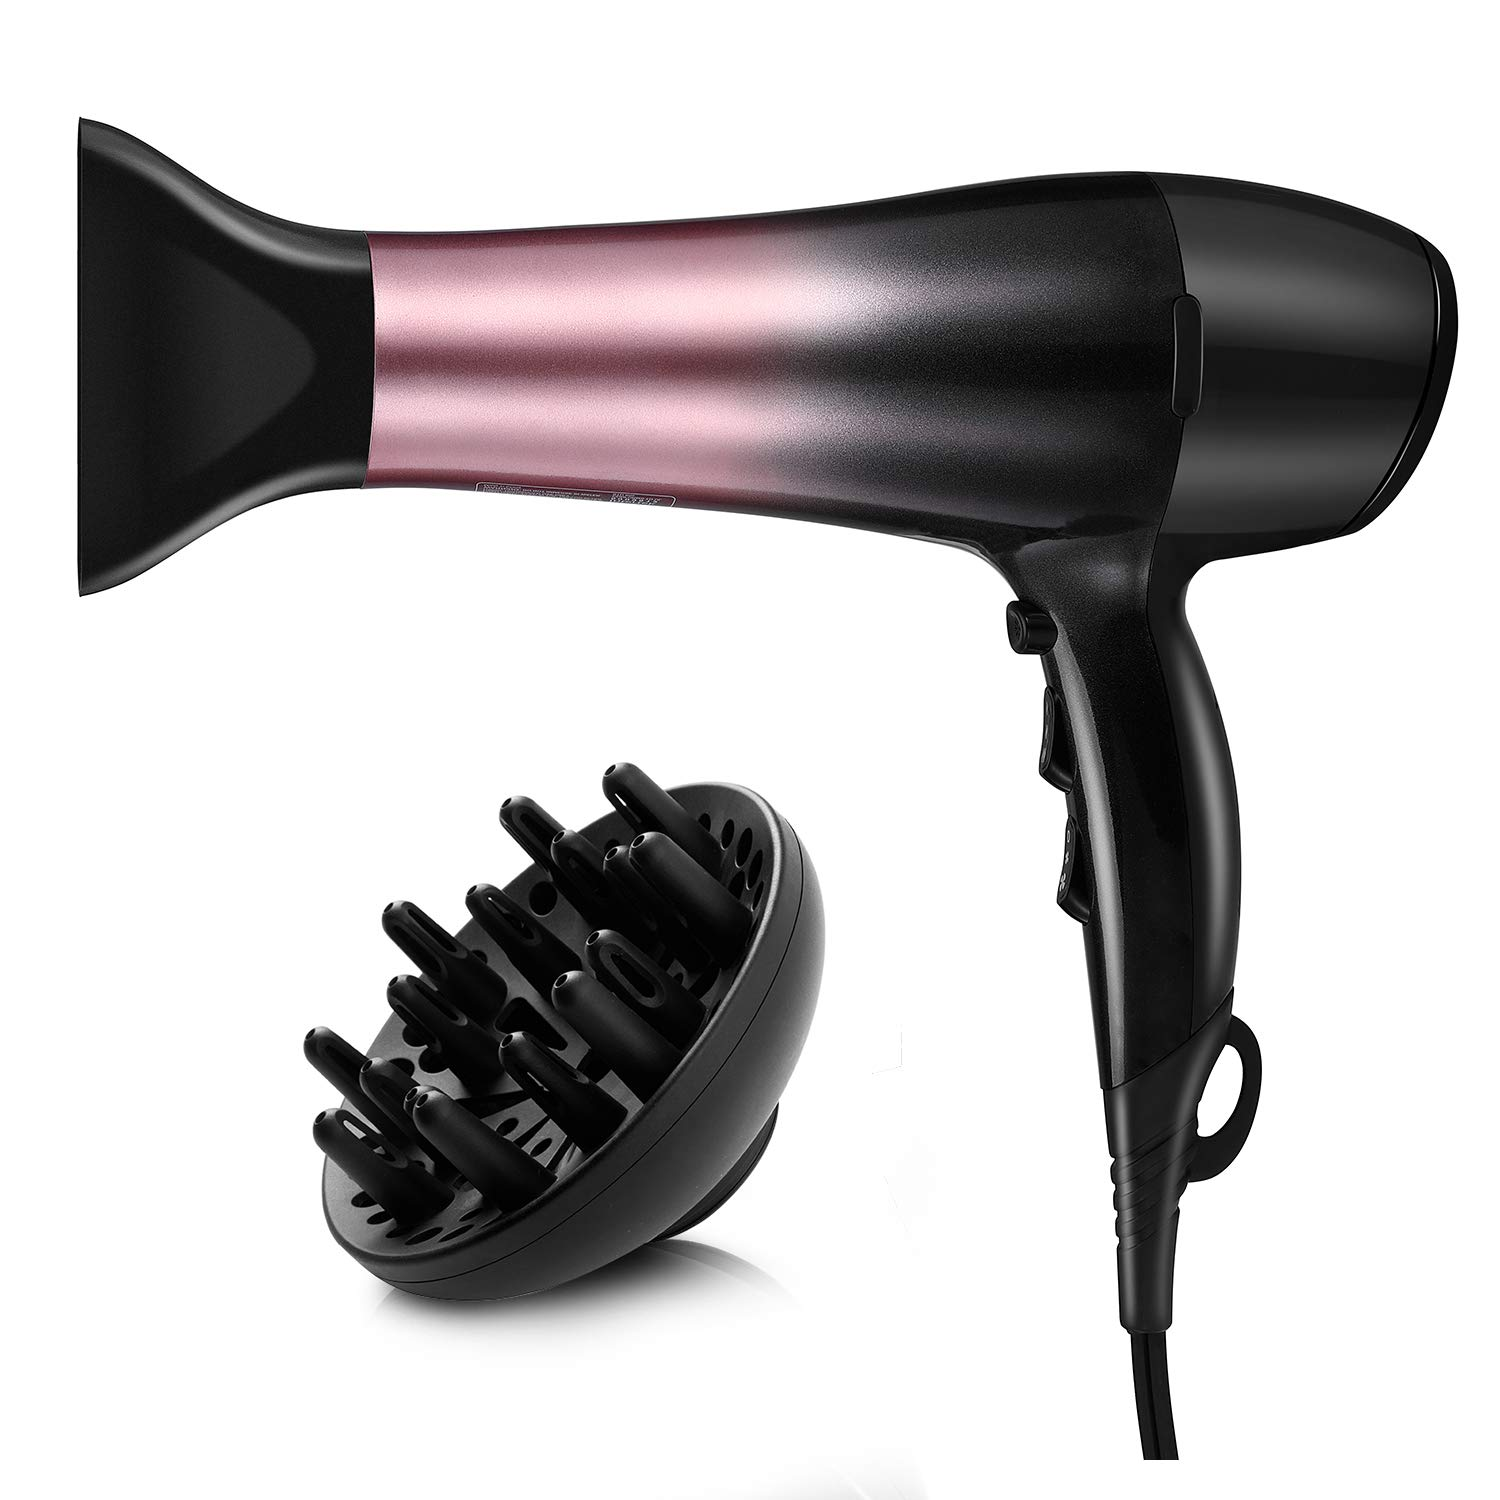 KIPOZI 1875W Hair Dryer, Nano Ionic Blow Dryer